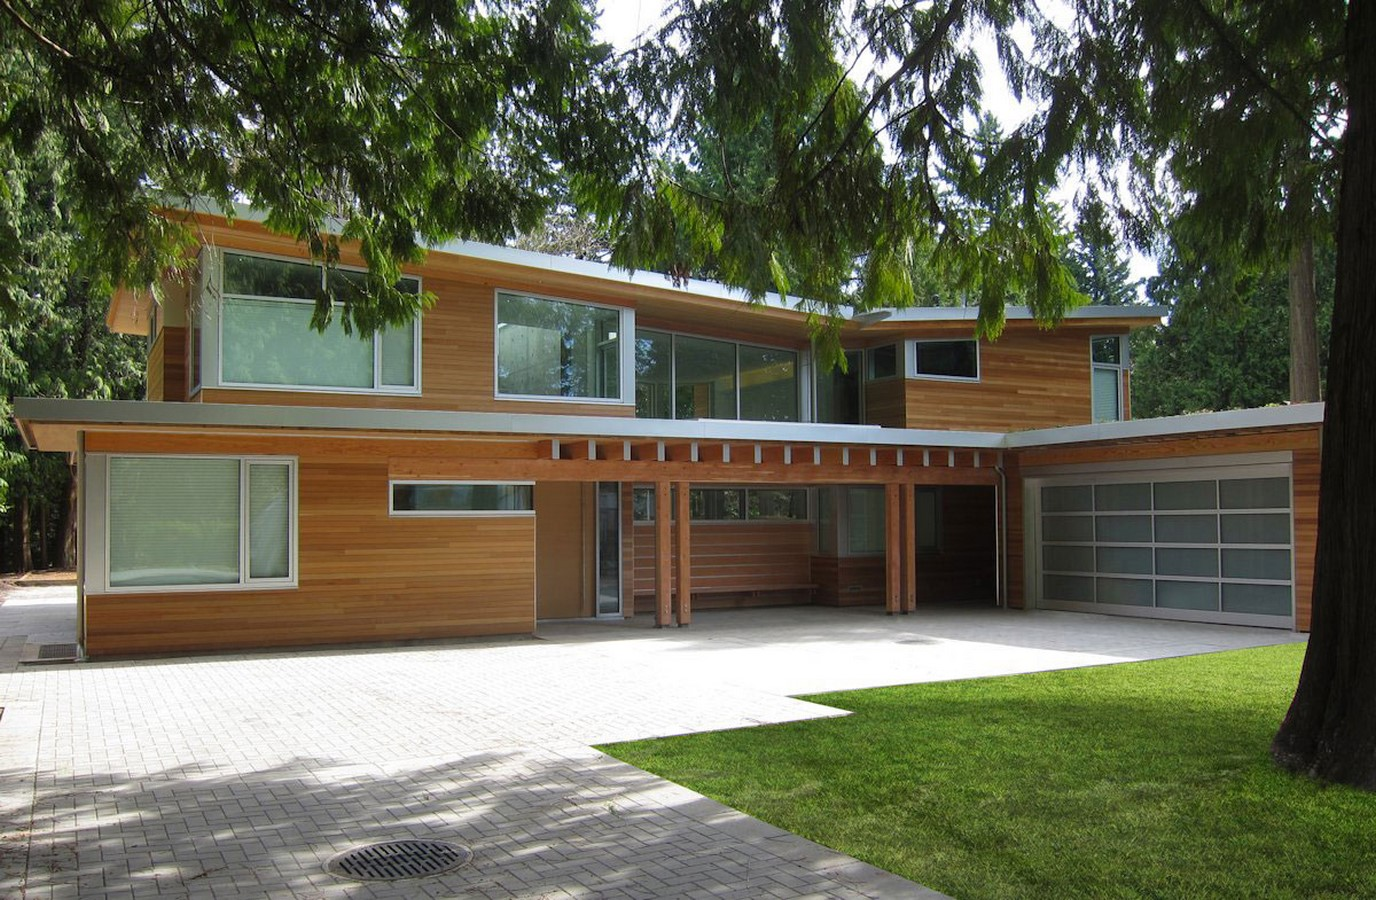 10 Examples of butterfly roofing in the Mid-Century Classic Architecture - Sheet11